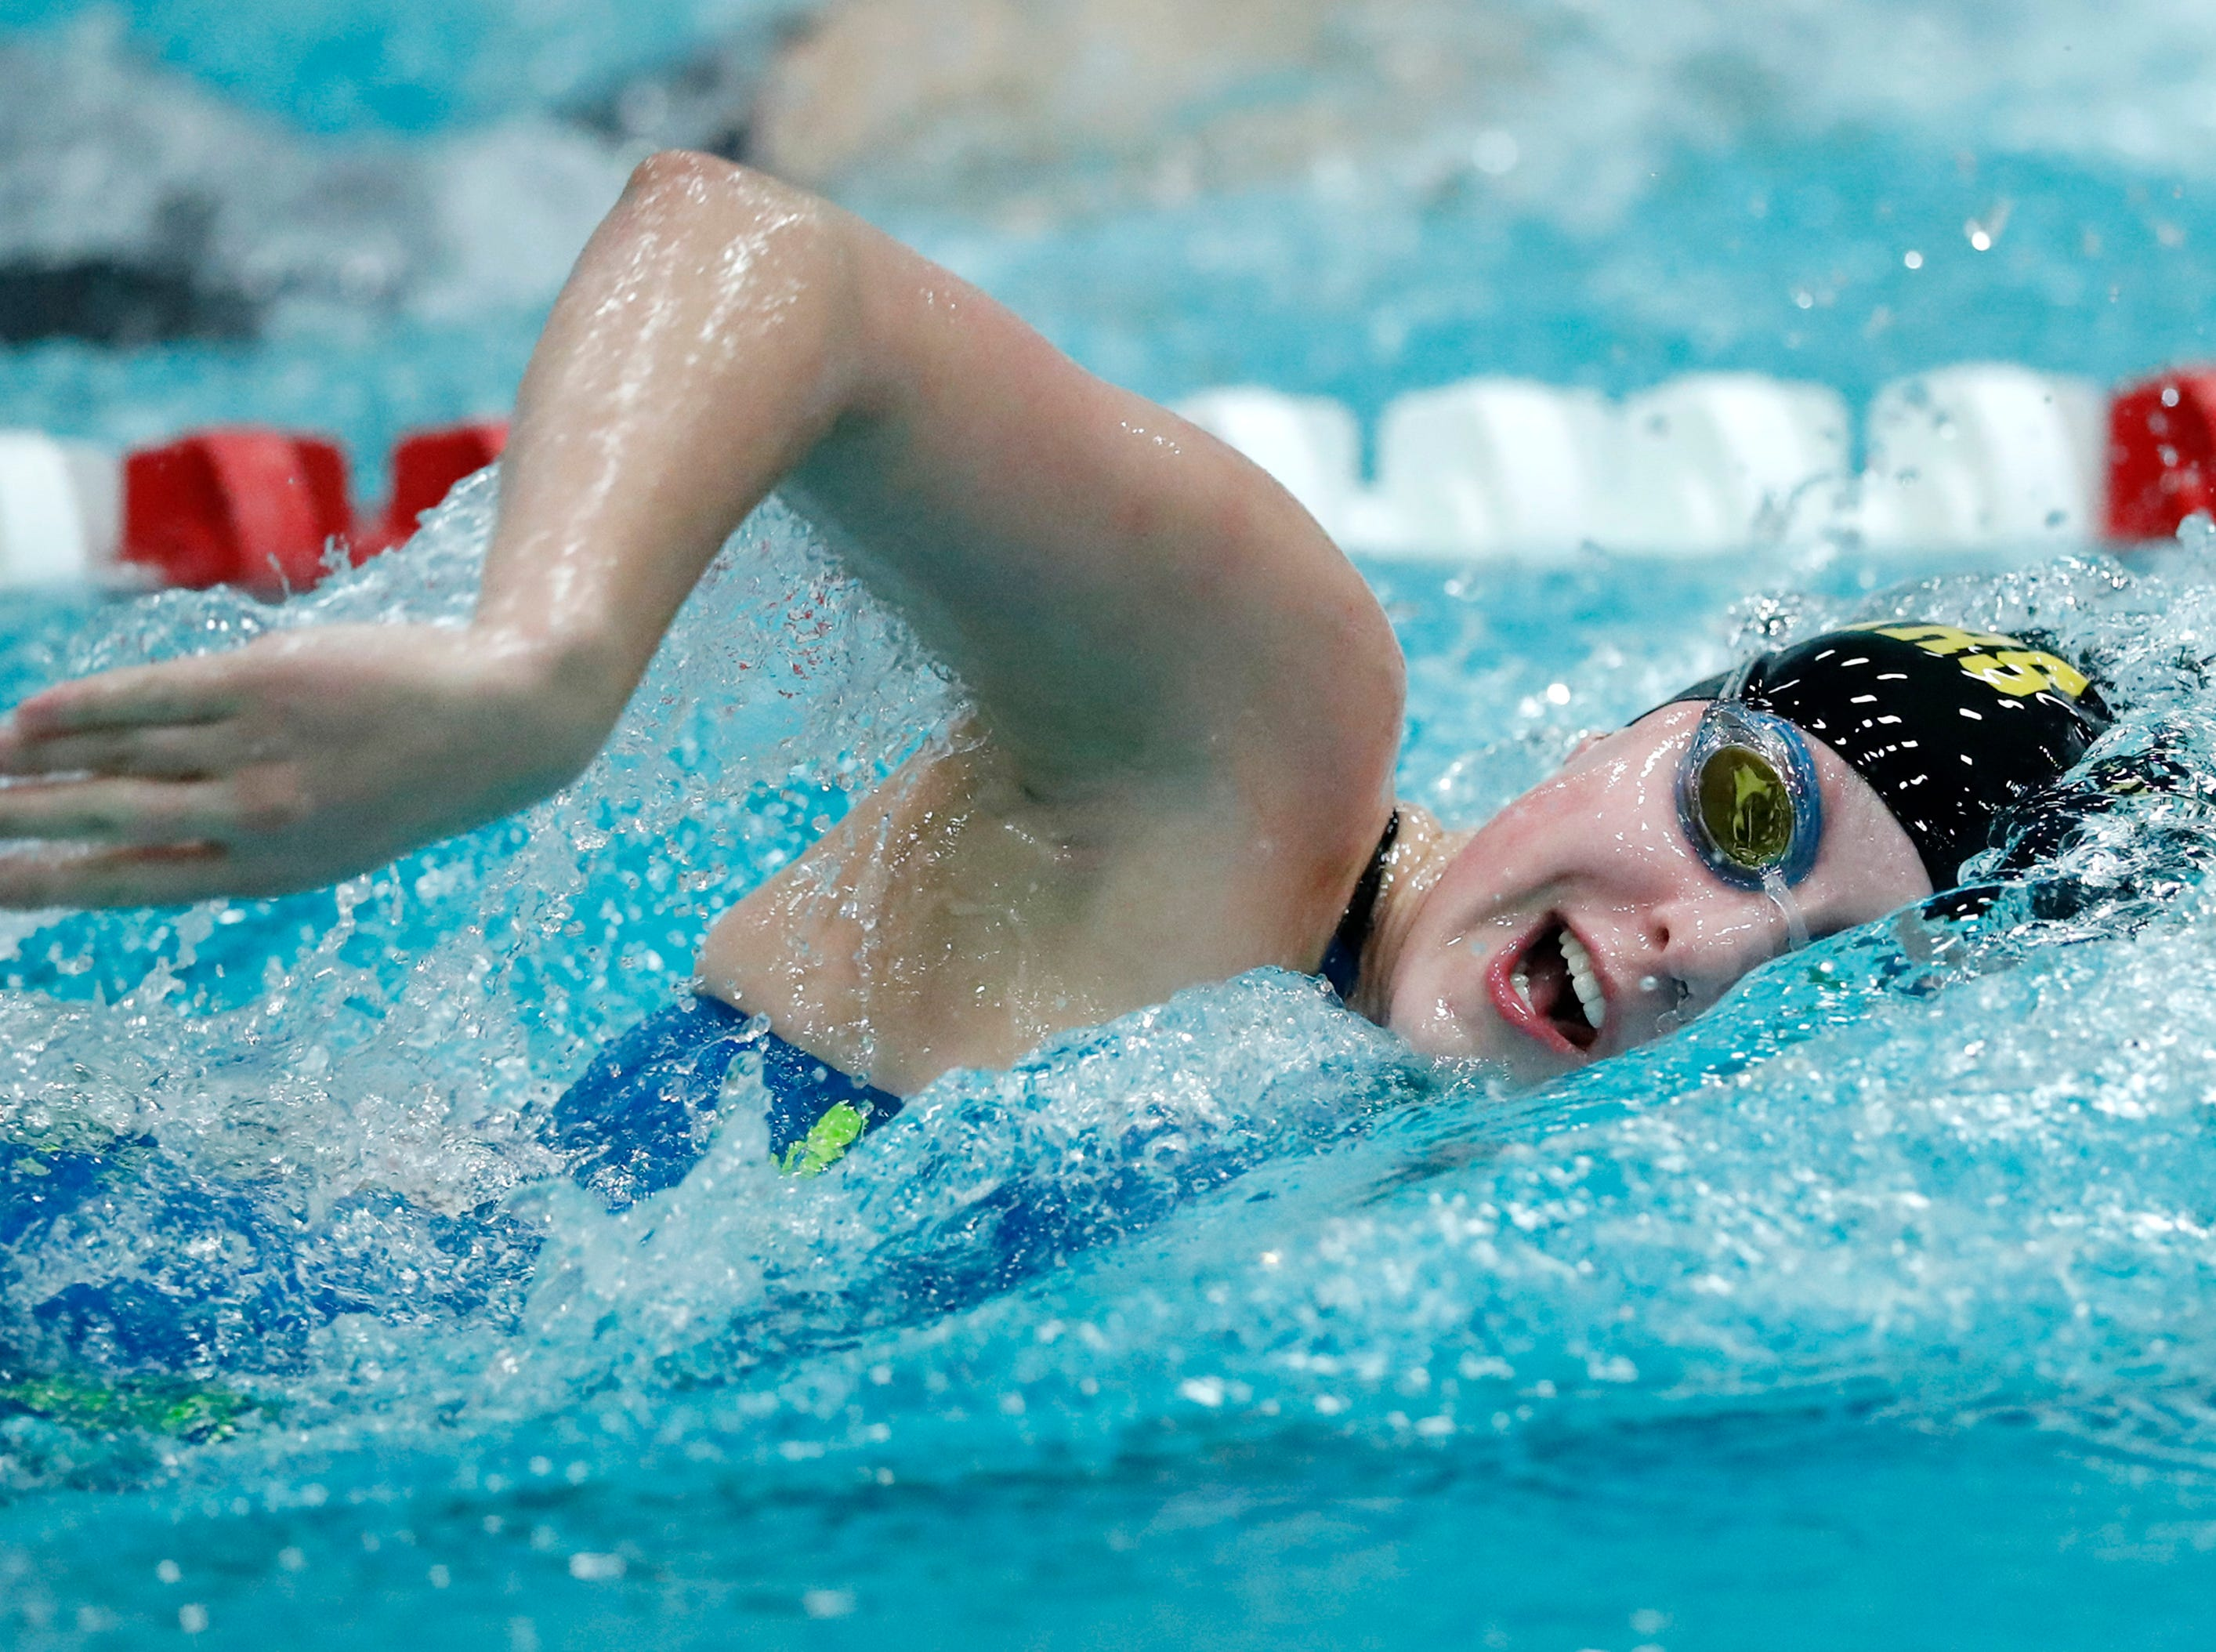 Ashwaubenon's Sydney Popp races in the 500 yard freestyle during the WIAA Division 2 State Swimming and Diving meet Friday, Nov. 9, 2018, at the UW Natatorium in Madison, Wis.Danny Damiani/USA TODAY NETWORK-Wisconsin